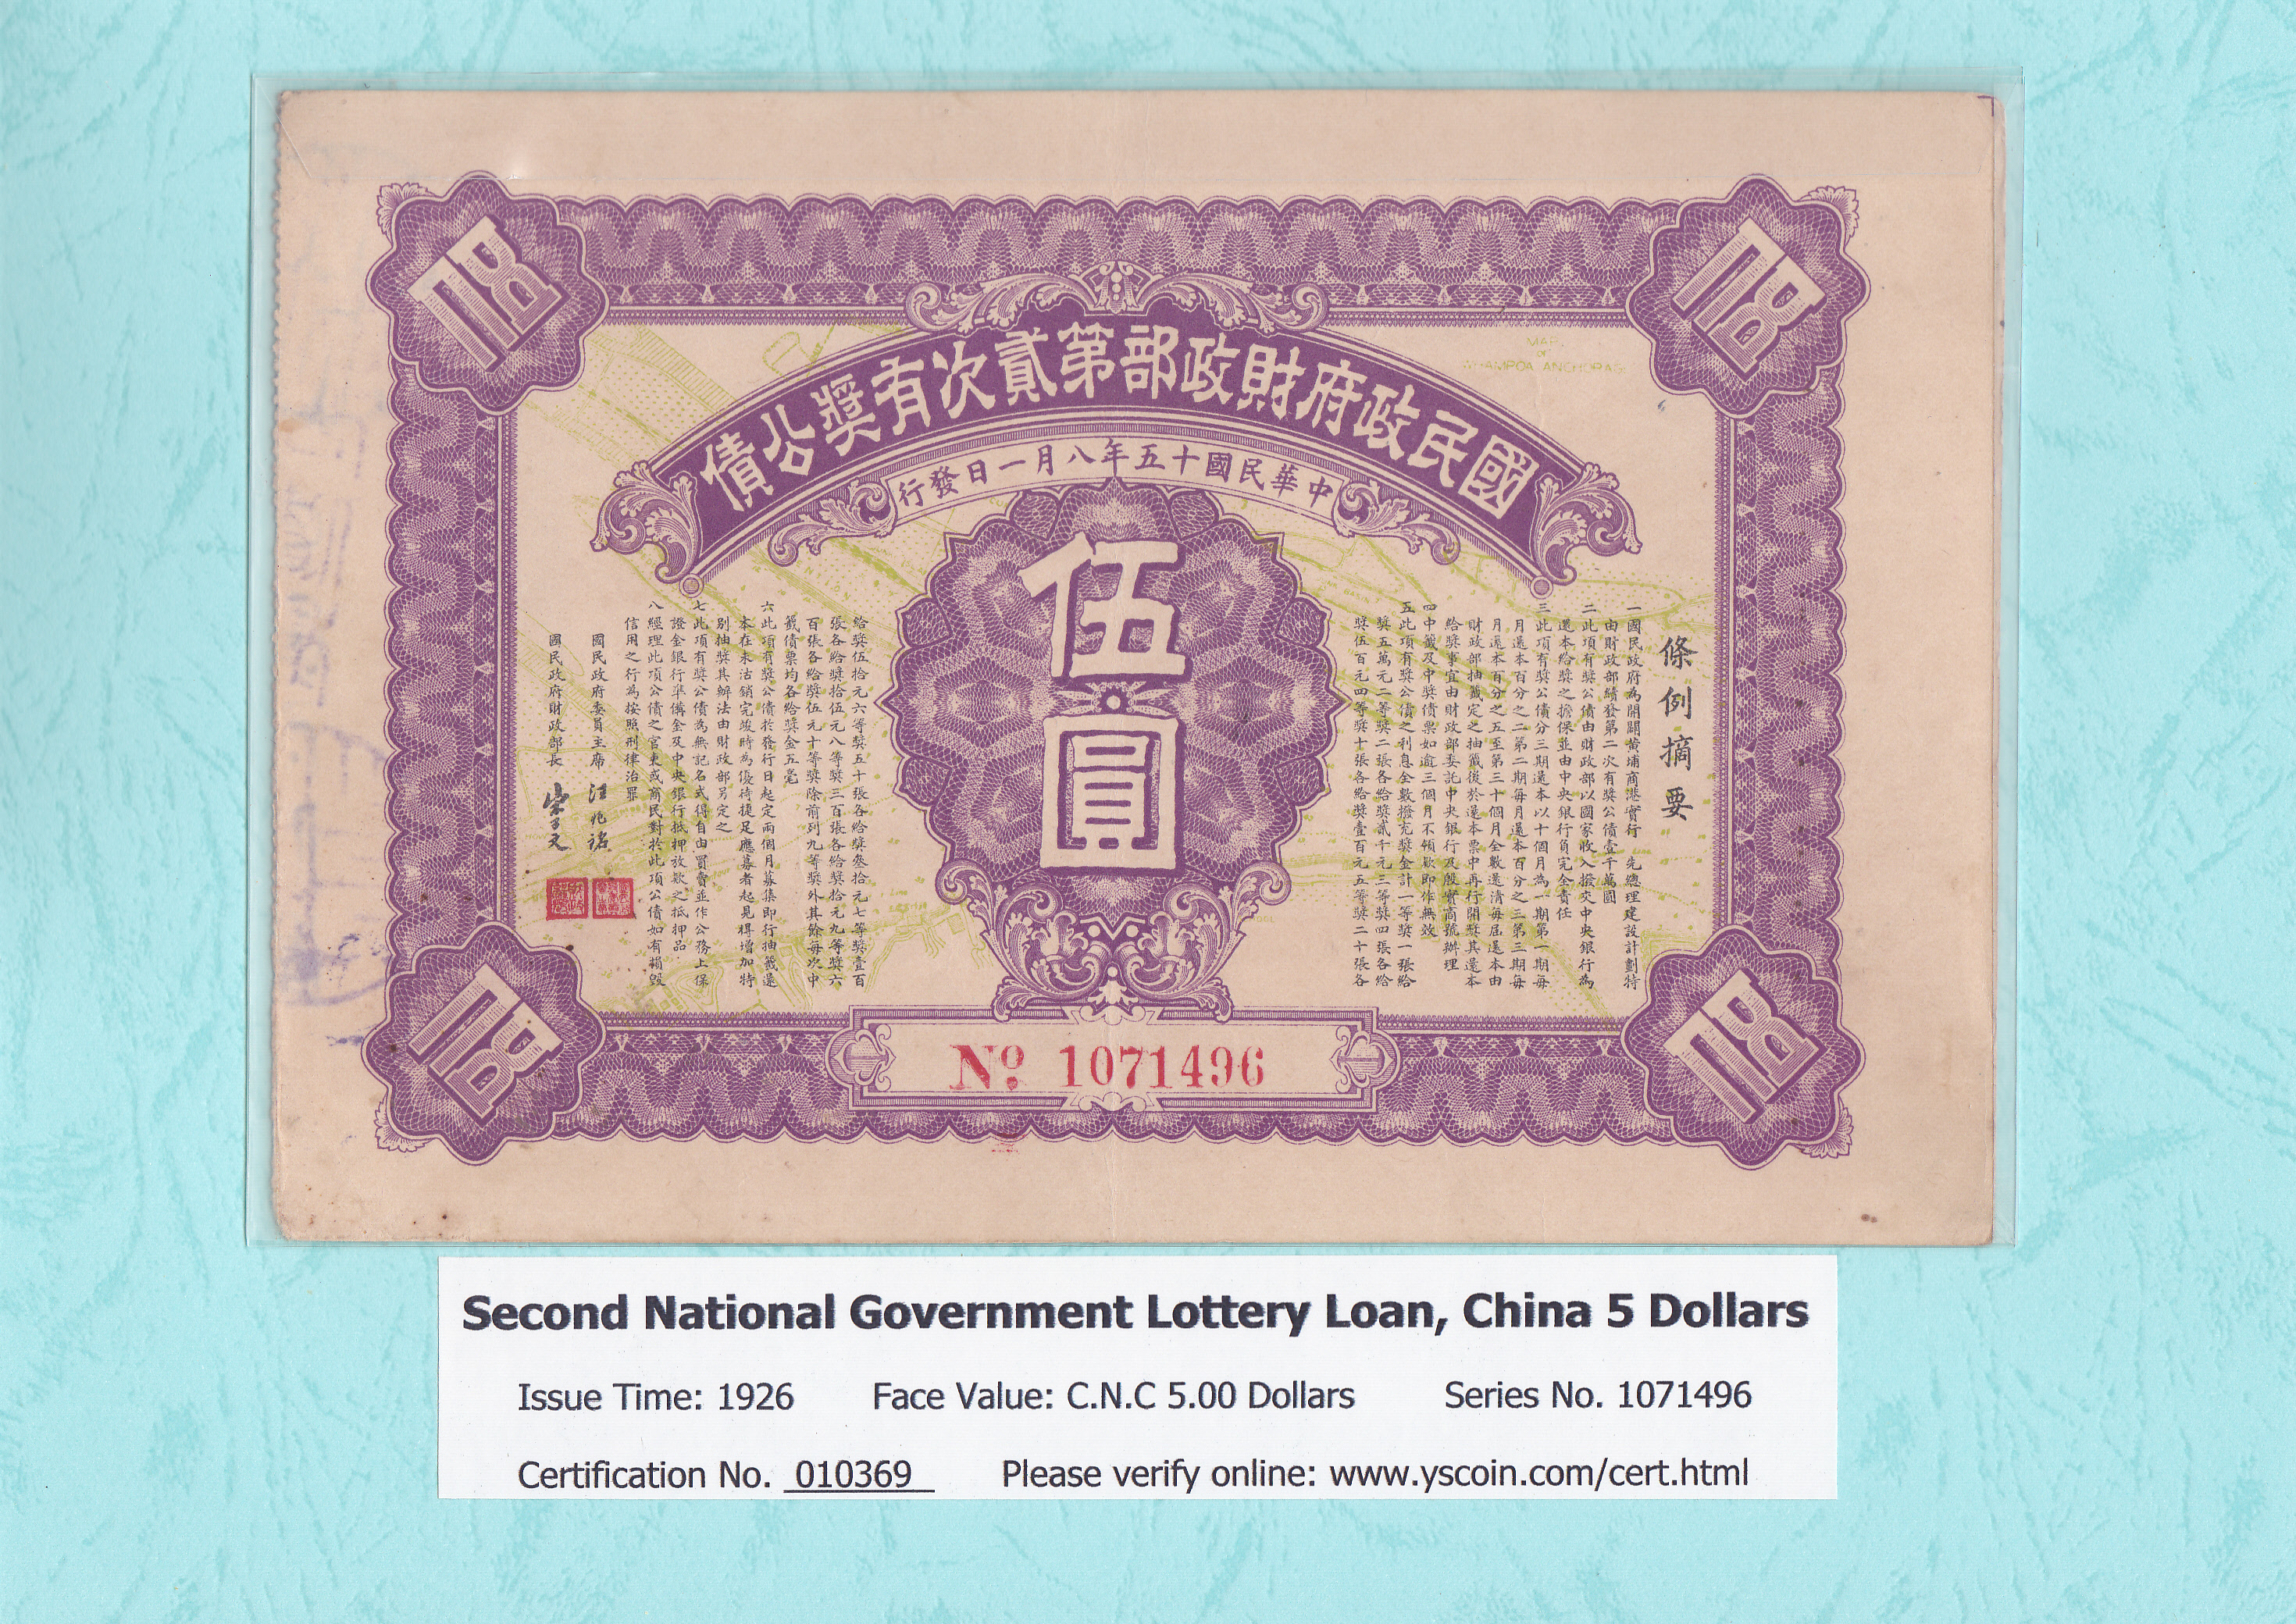 010369, Second National Government Lottery Loan, China 5 Dollars